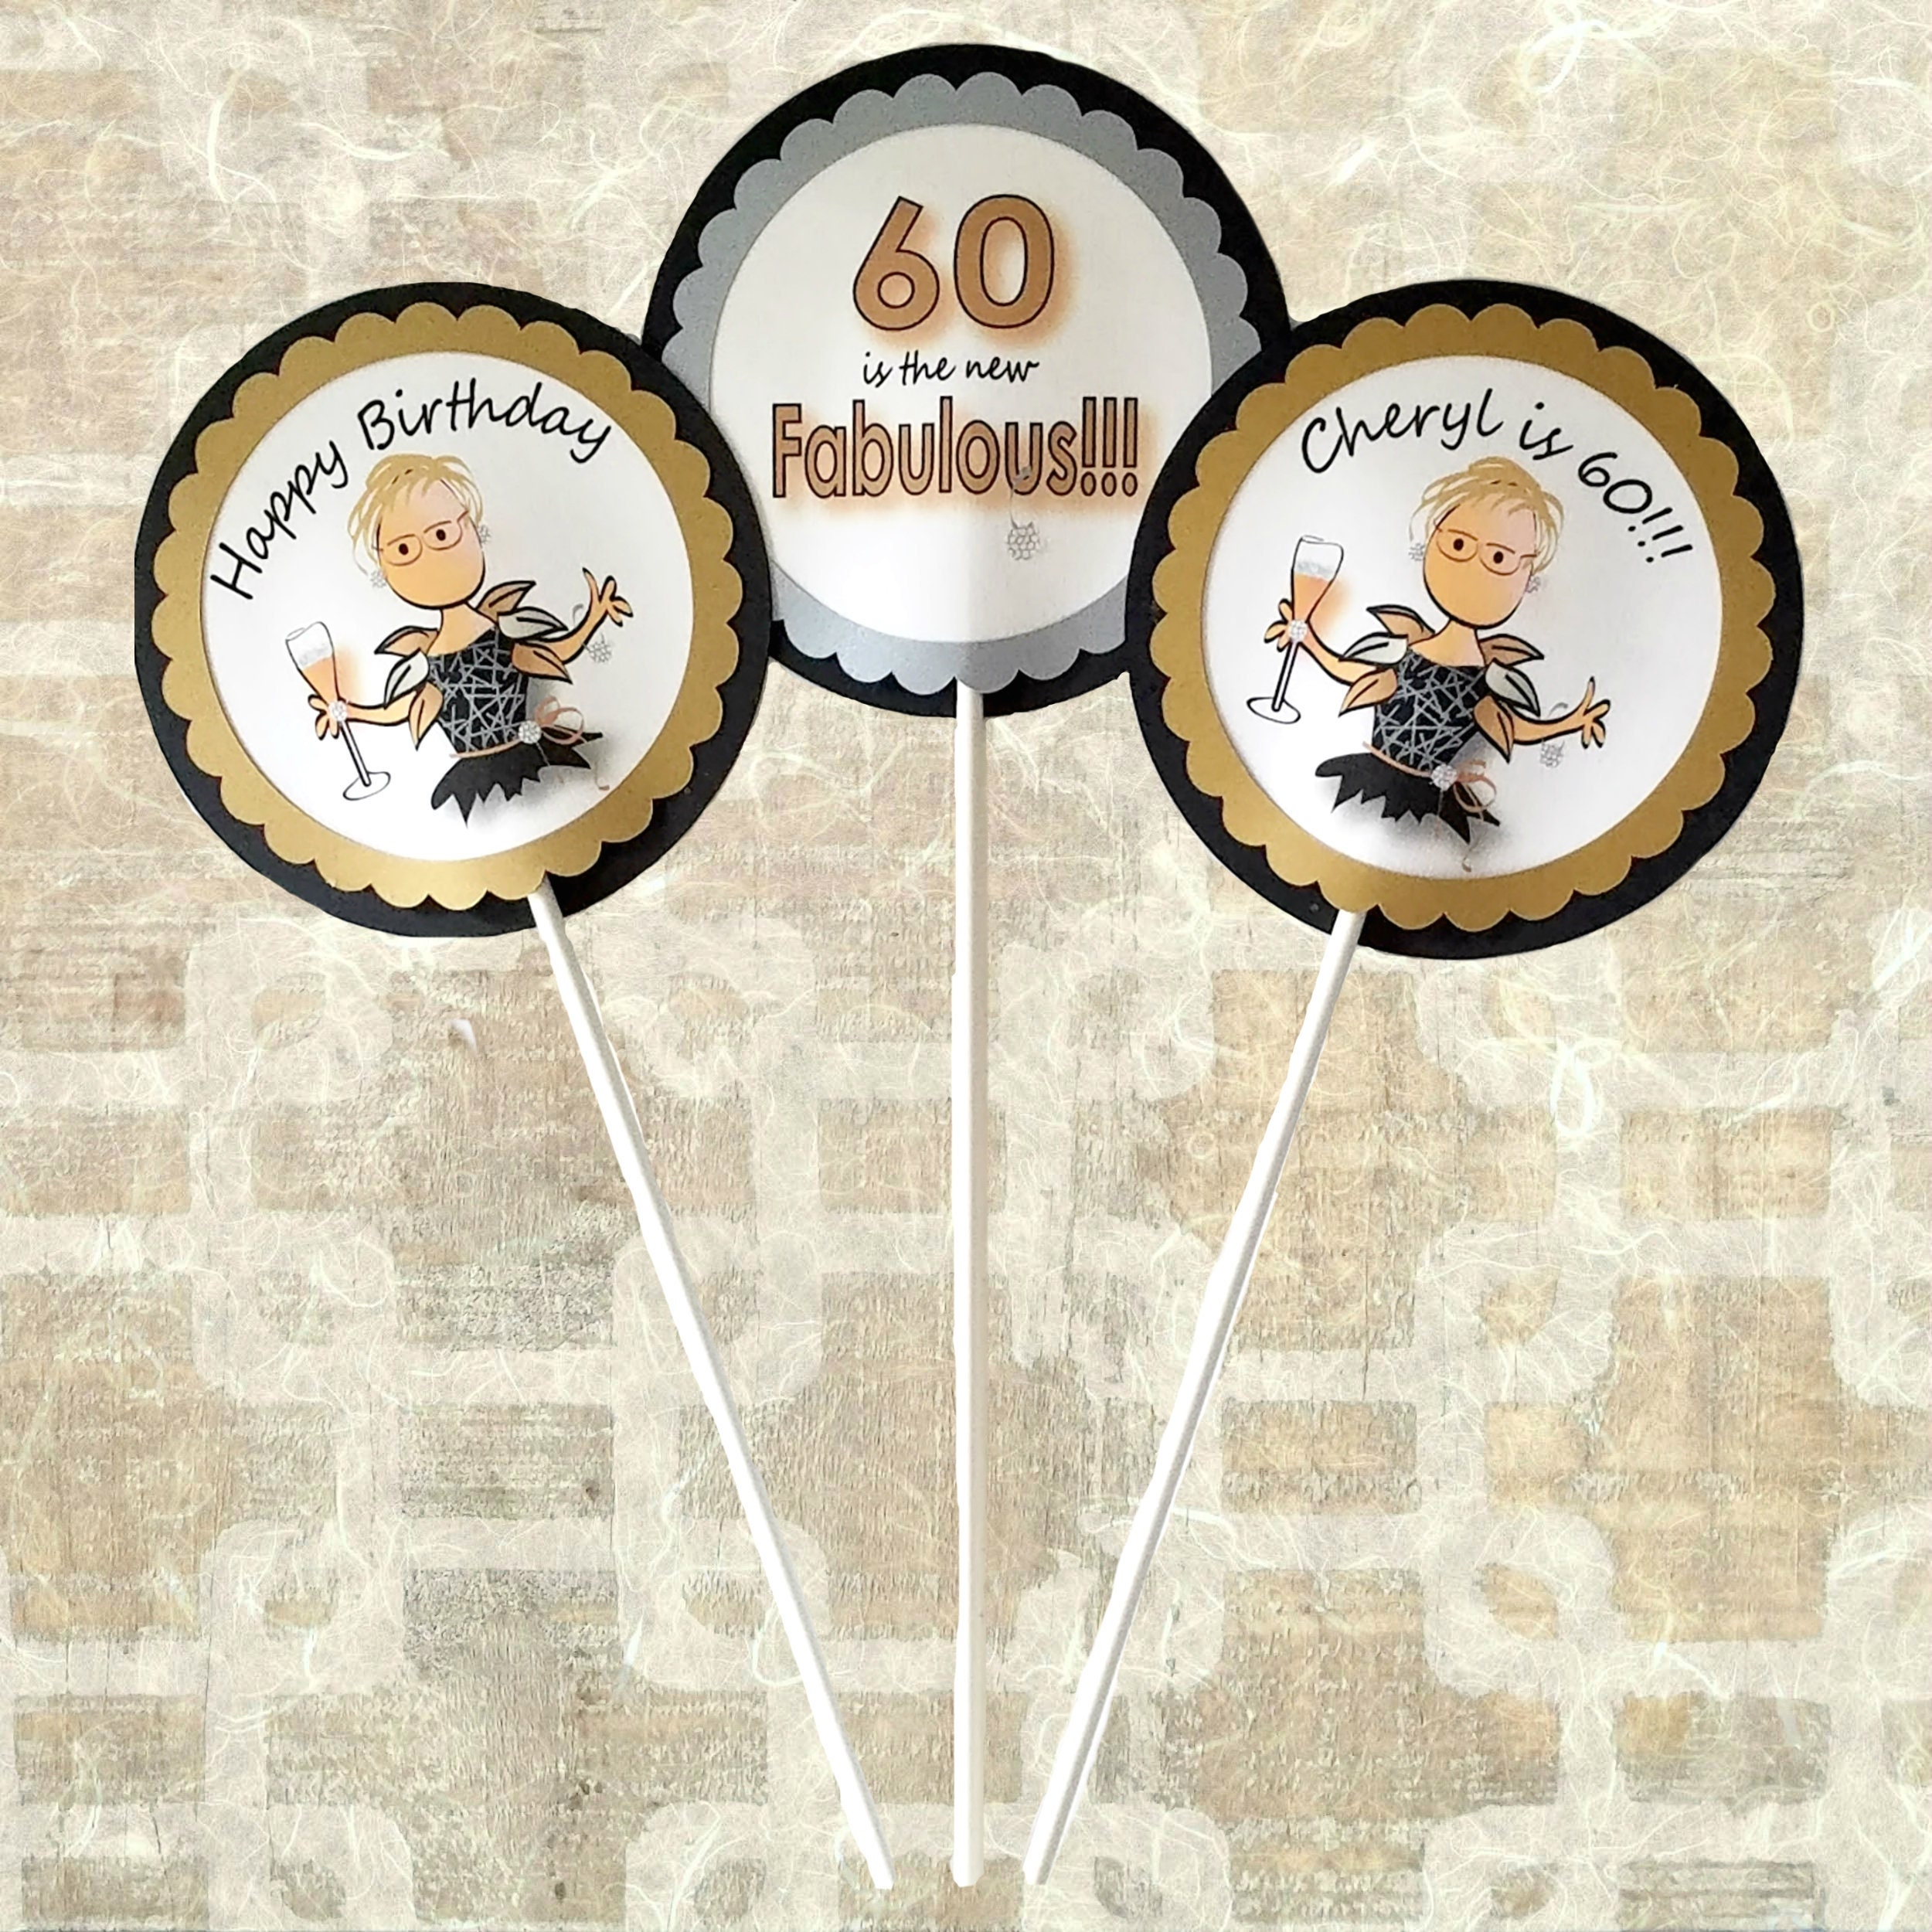 Personalized Cake Topper 60th Birthday Party Ideas 60th